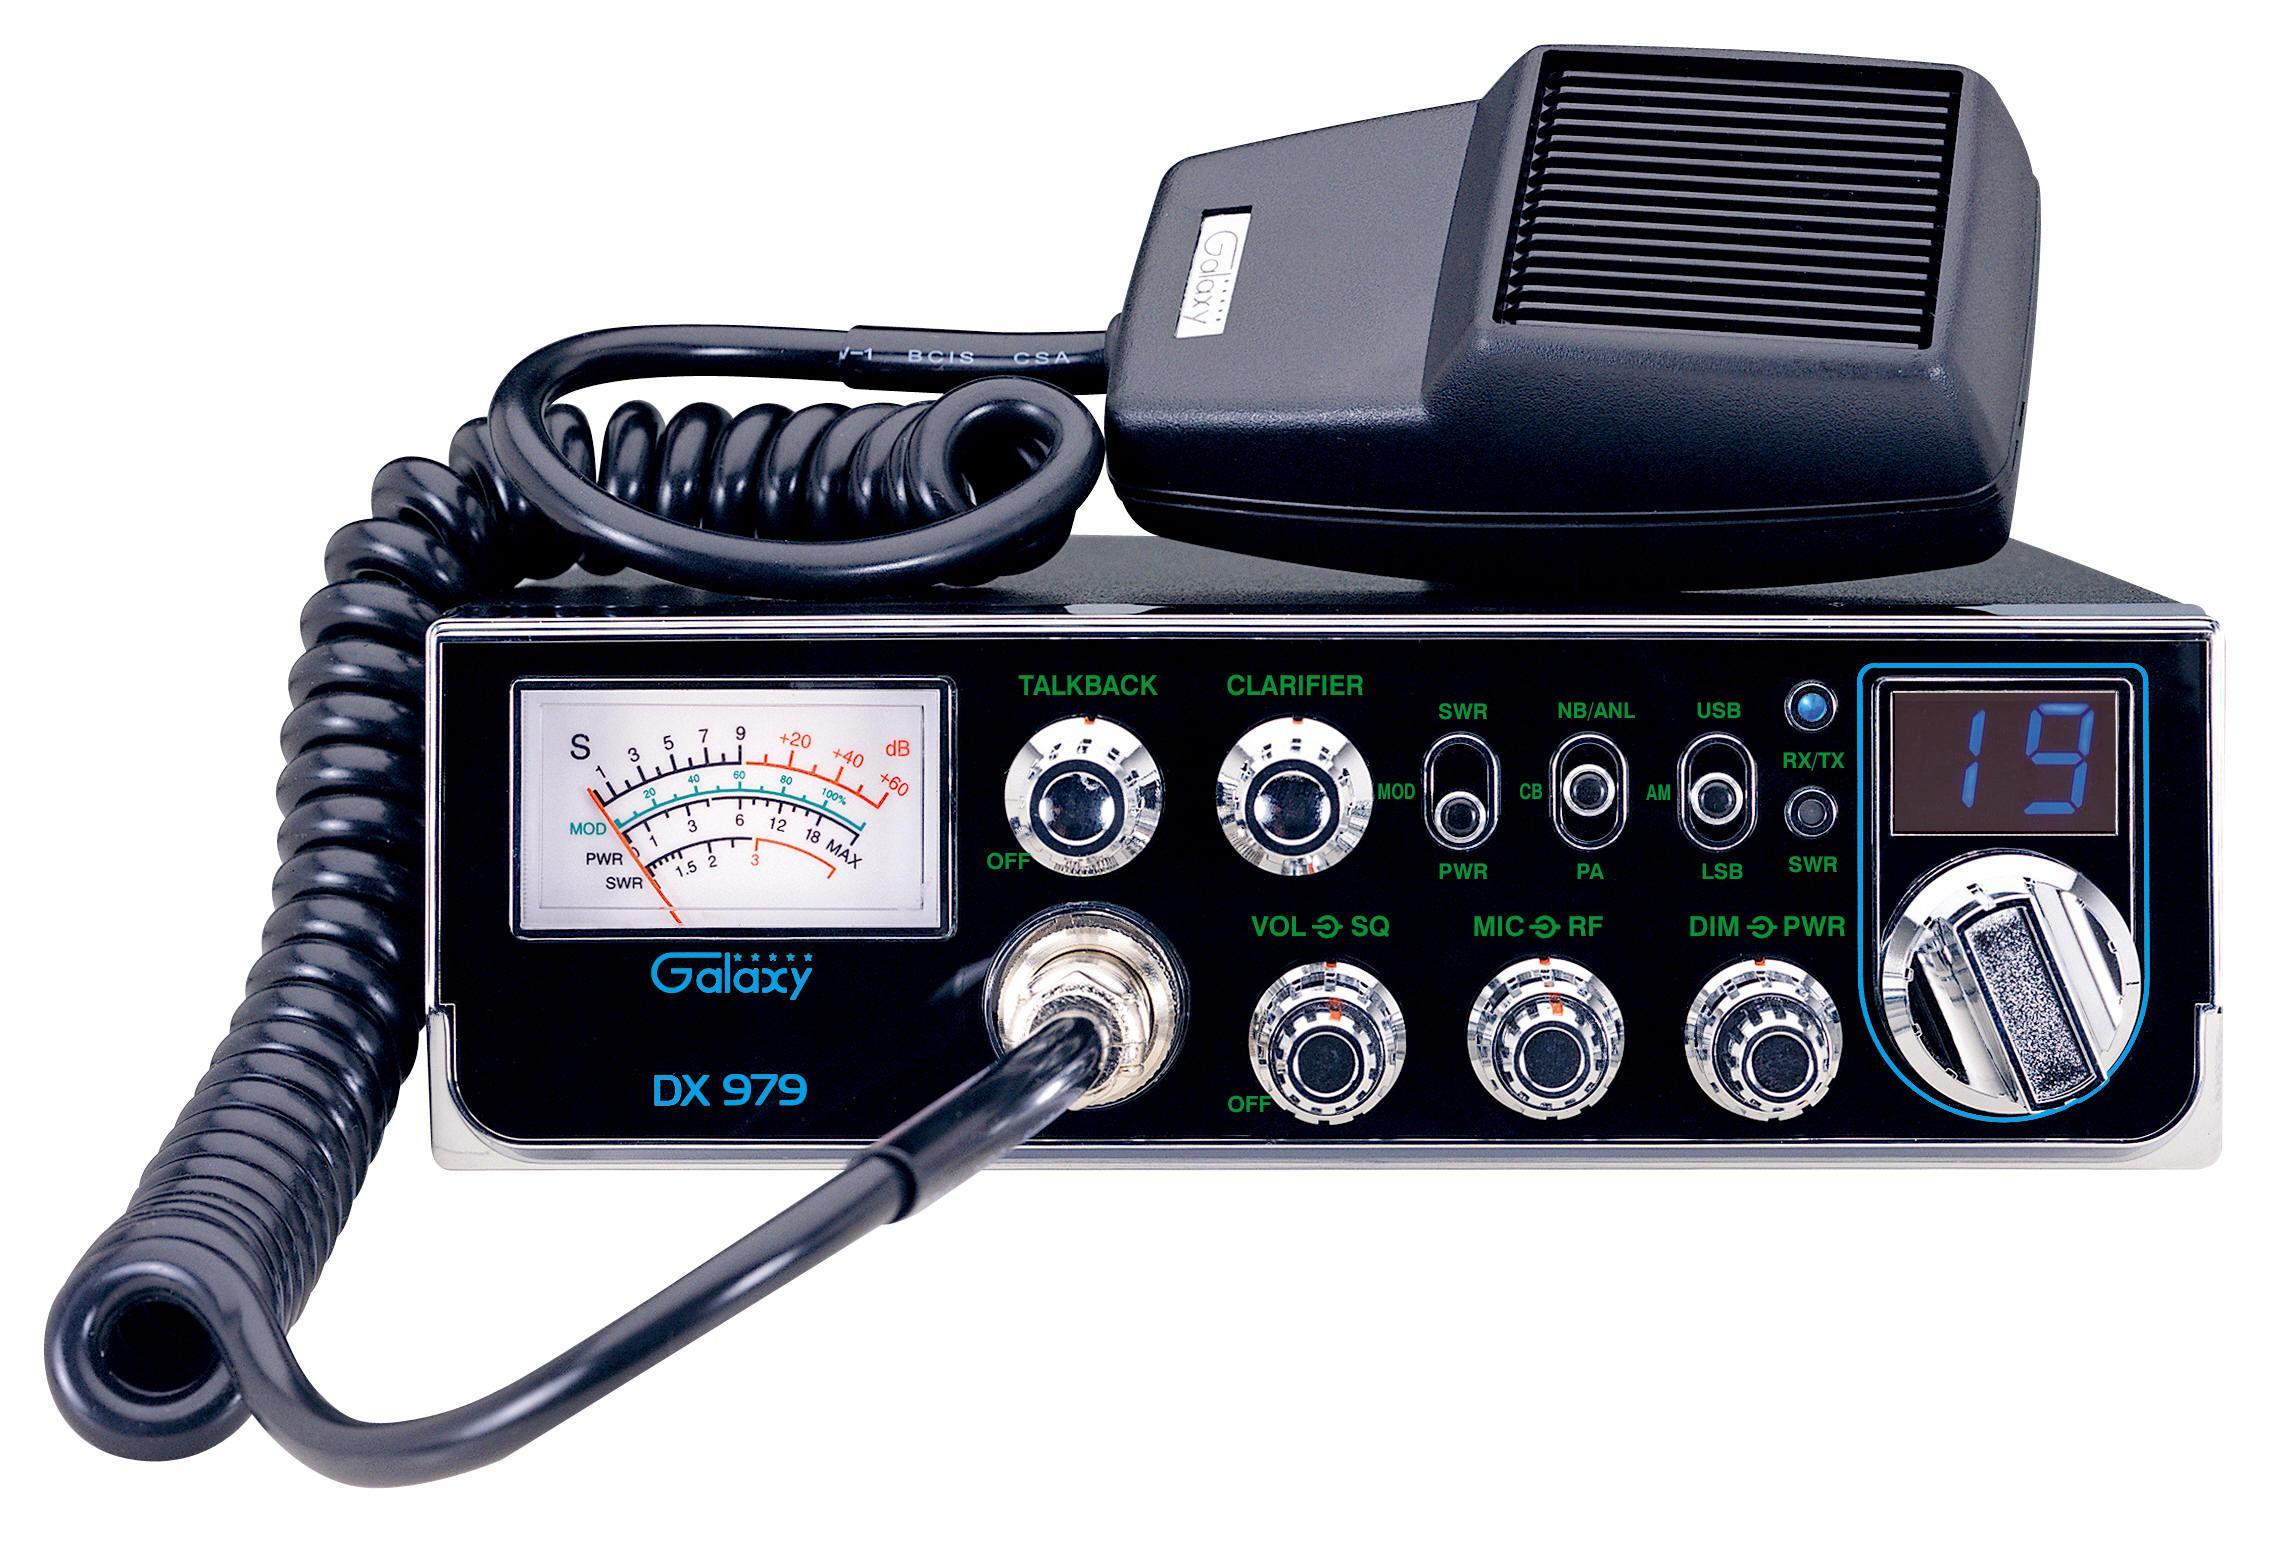 40 Channel Cb Frequency Chart : Galaxy dx cb radio large image